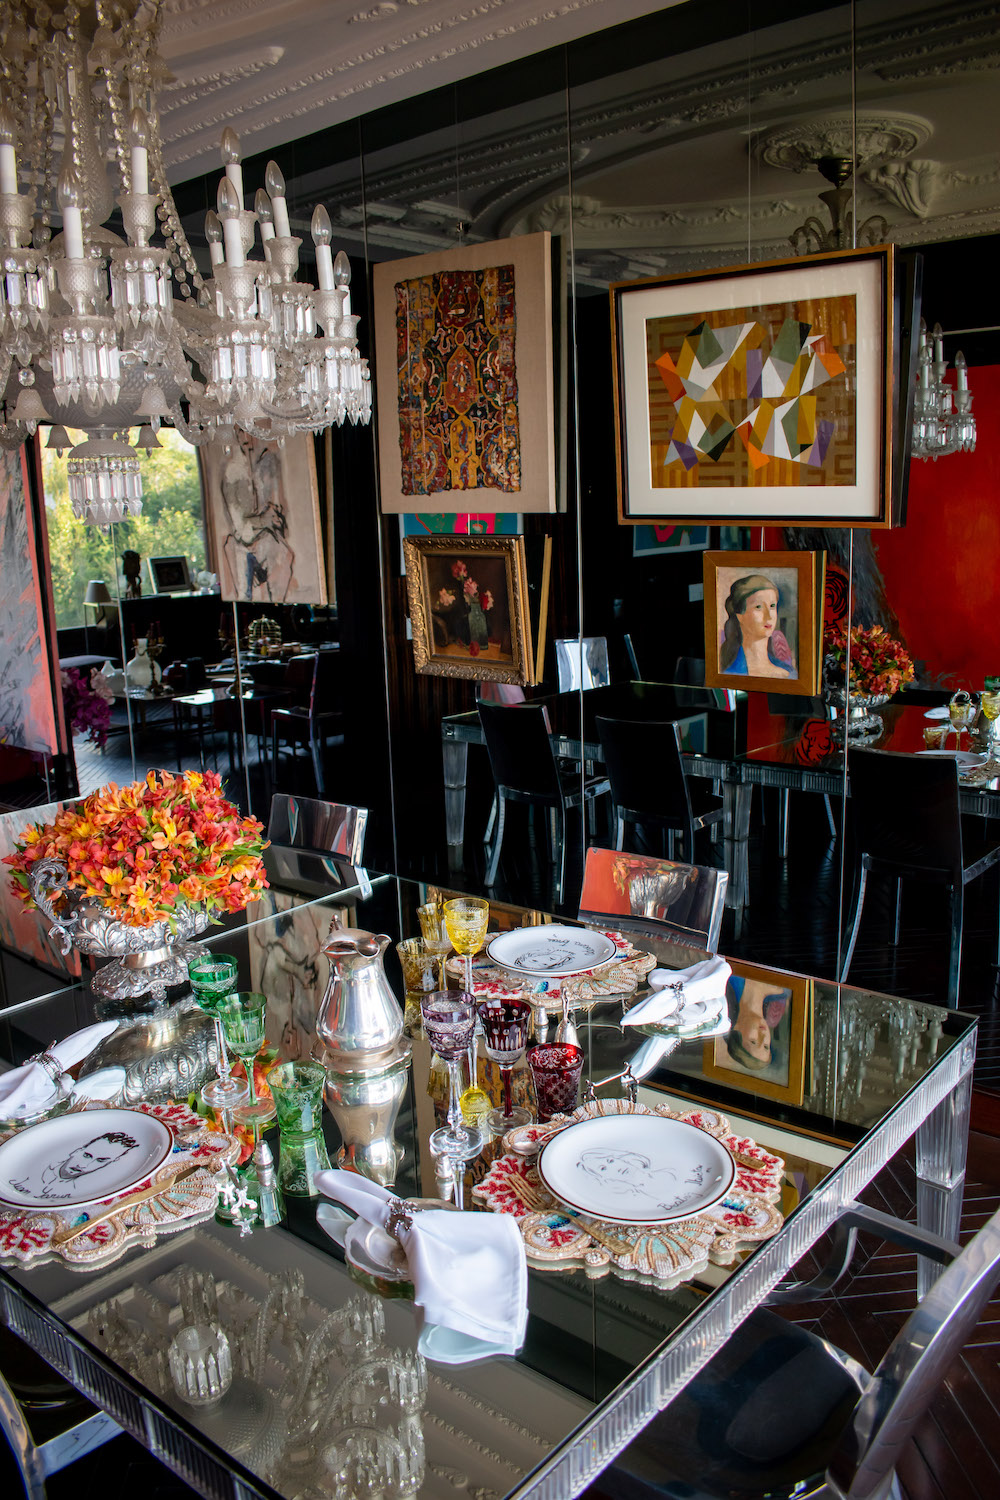 """Grace Weinrib, """"Pencil (triptych)"""" (partially); Enrique Castro Cid, """"Untitled""""; Josefina Guilisasti, """"Fragmento Persa S. XVII""""; Matilde Pérez, """"Flores"""" and """"Untitled""""; Graciela Aranis, """"Untitled""""; Philippe Starck Emeco Hudson Chairs; Baccarat dinning table by Philippe Stark; and Baccarat chandelier Philippe Starck. Photo: Andrés Herrera. Courtesy of Juan Yarur."""